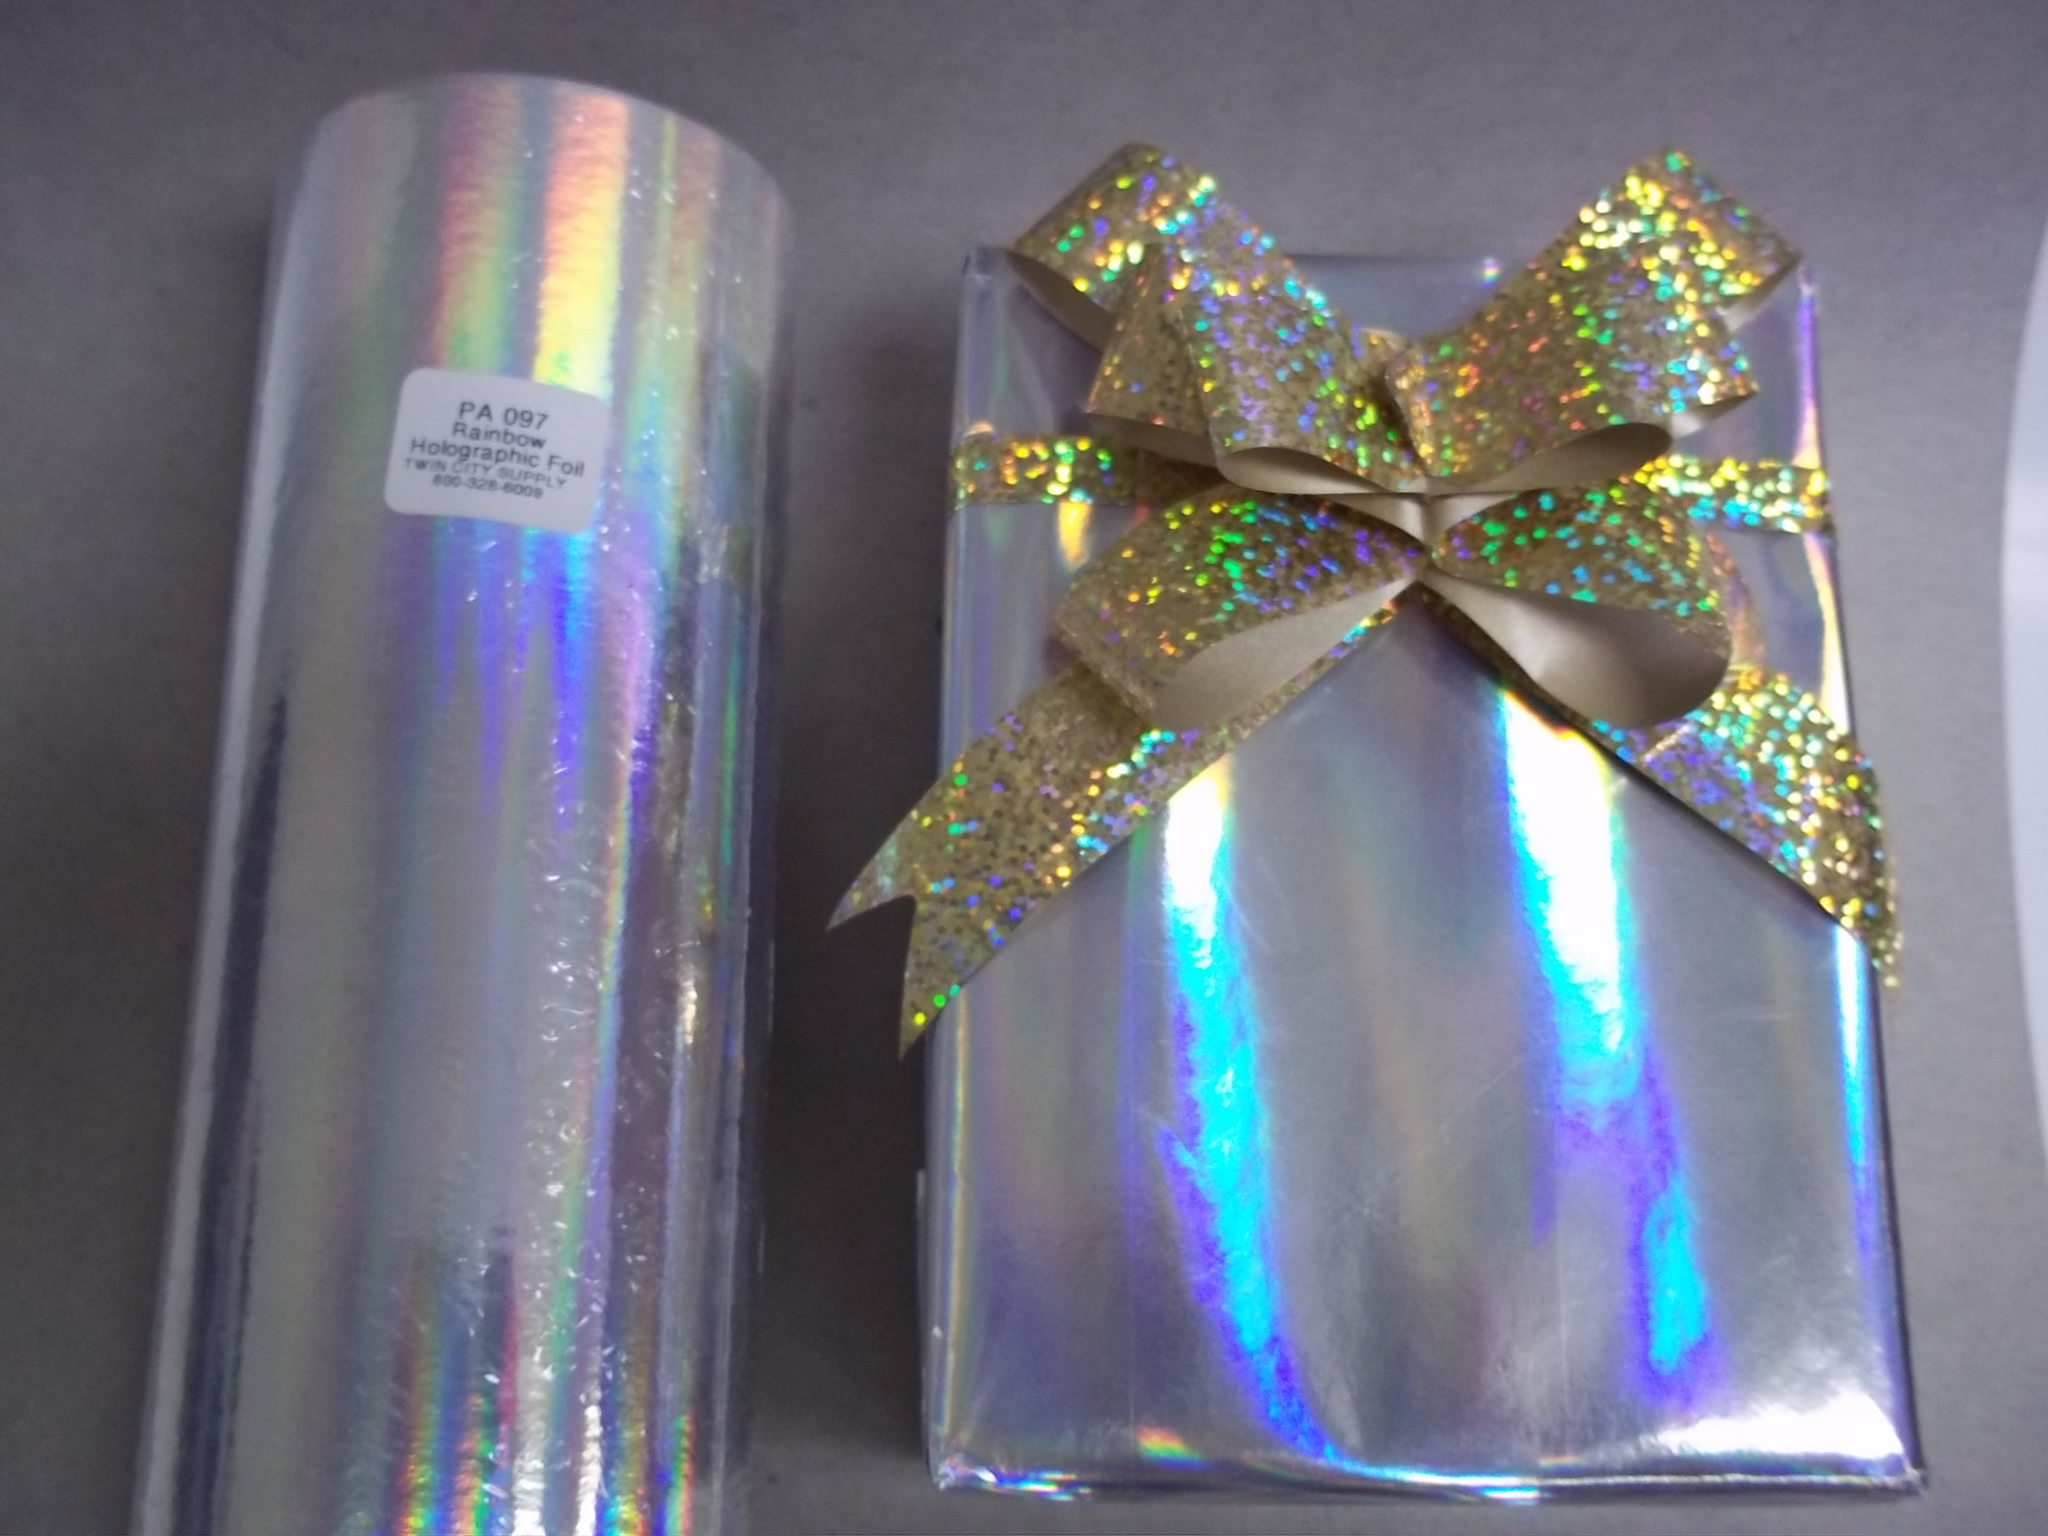 "PA097 Holographic Foil ""Rainbow"" Jewelers Roll"